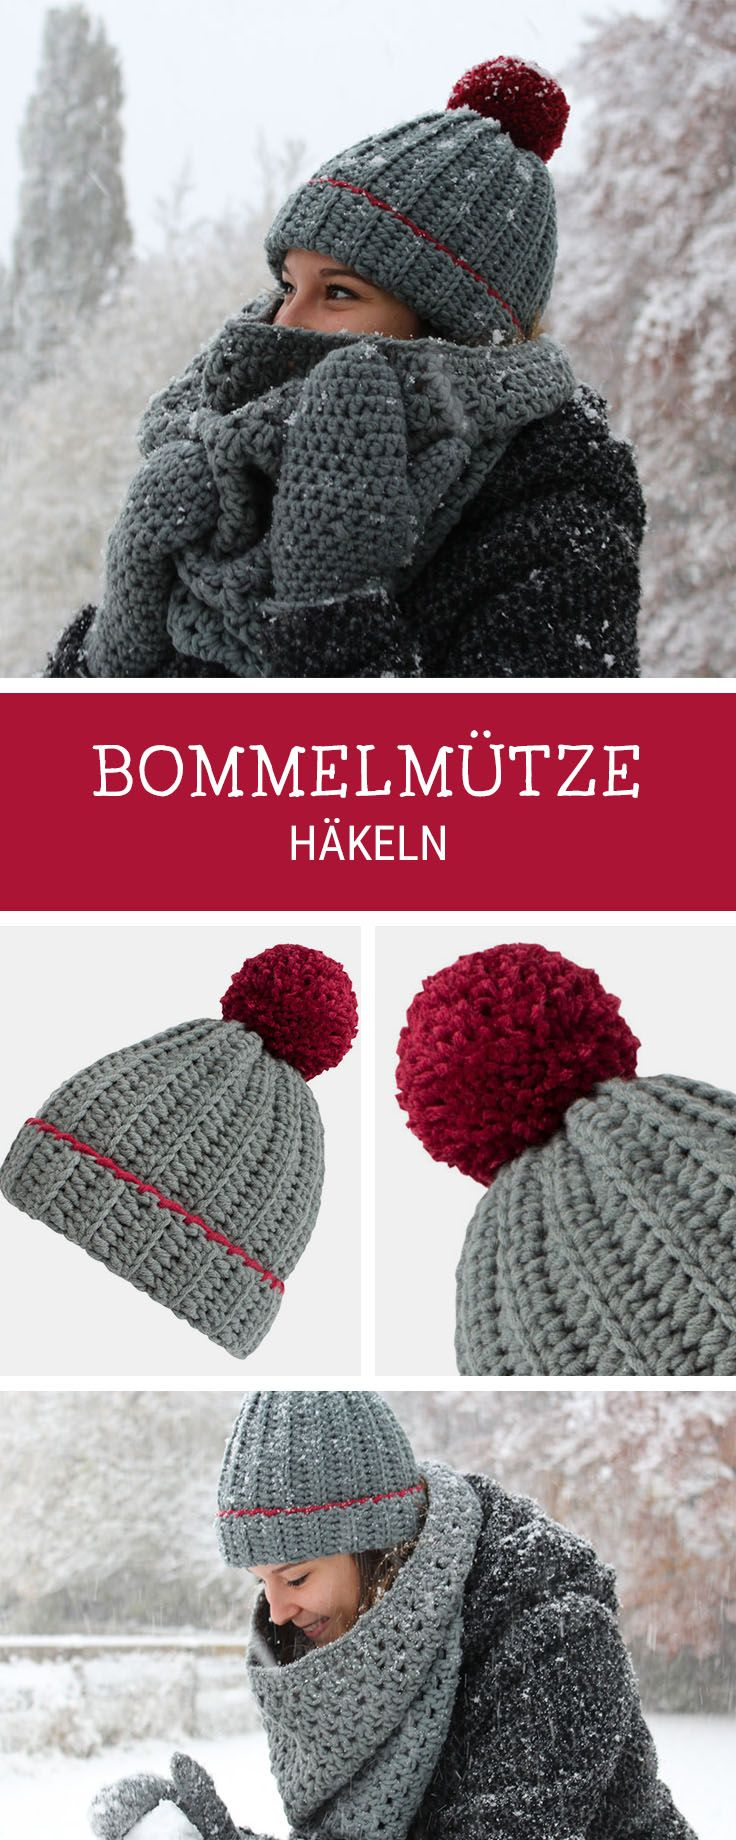 62 best myboshi Mützen images on Pinterest | Beanies, Hand crafts ...